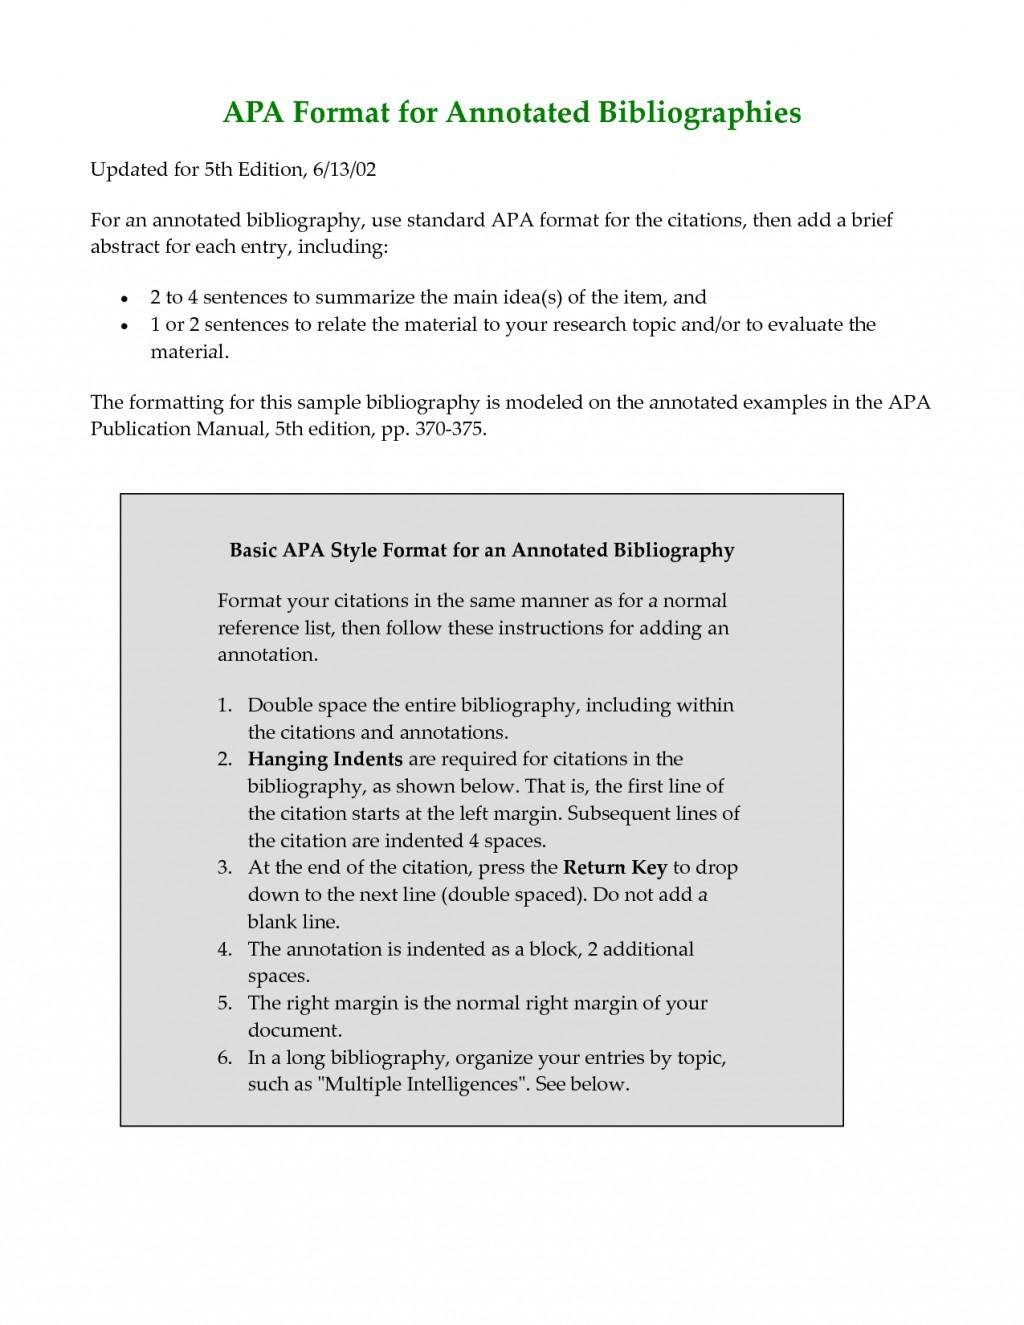 008 Apa Citation Format Example Research Paper Remarkable Sample Large